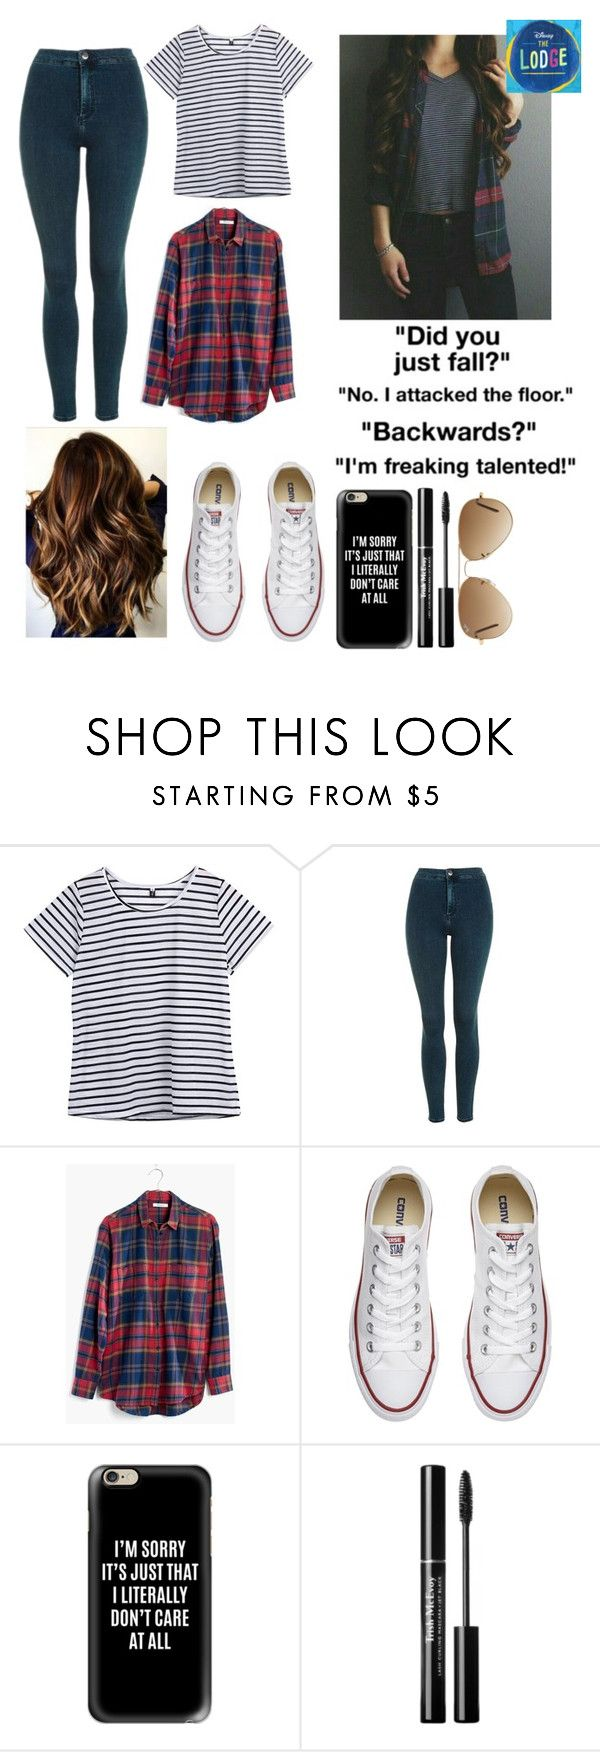 """Untitled #41"" by abbie0987 on Polyvore featuring Topshop, Madewell, Converse, Casetify and Ray-Ban"